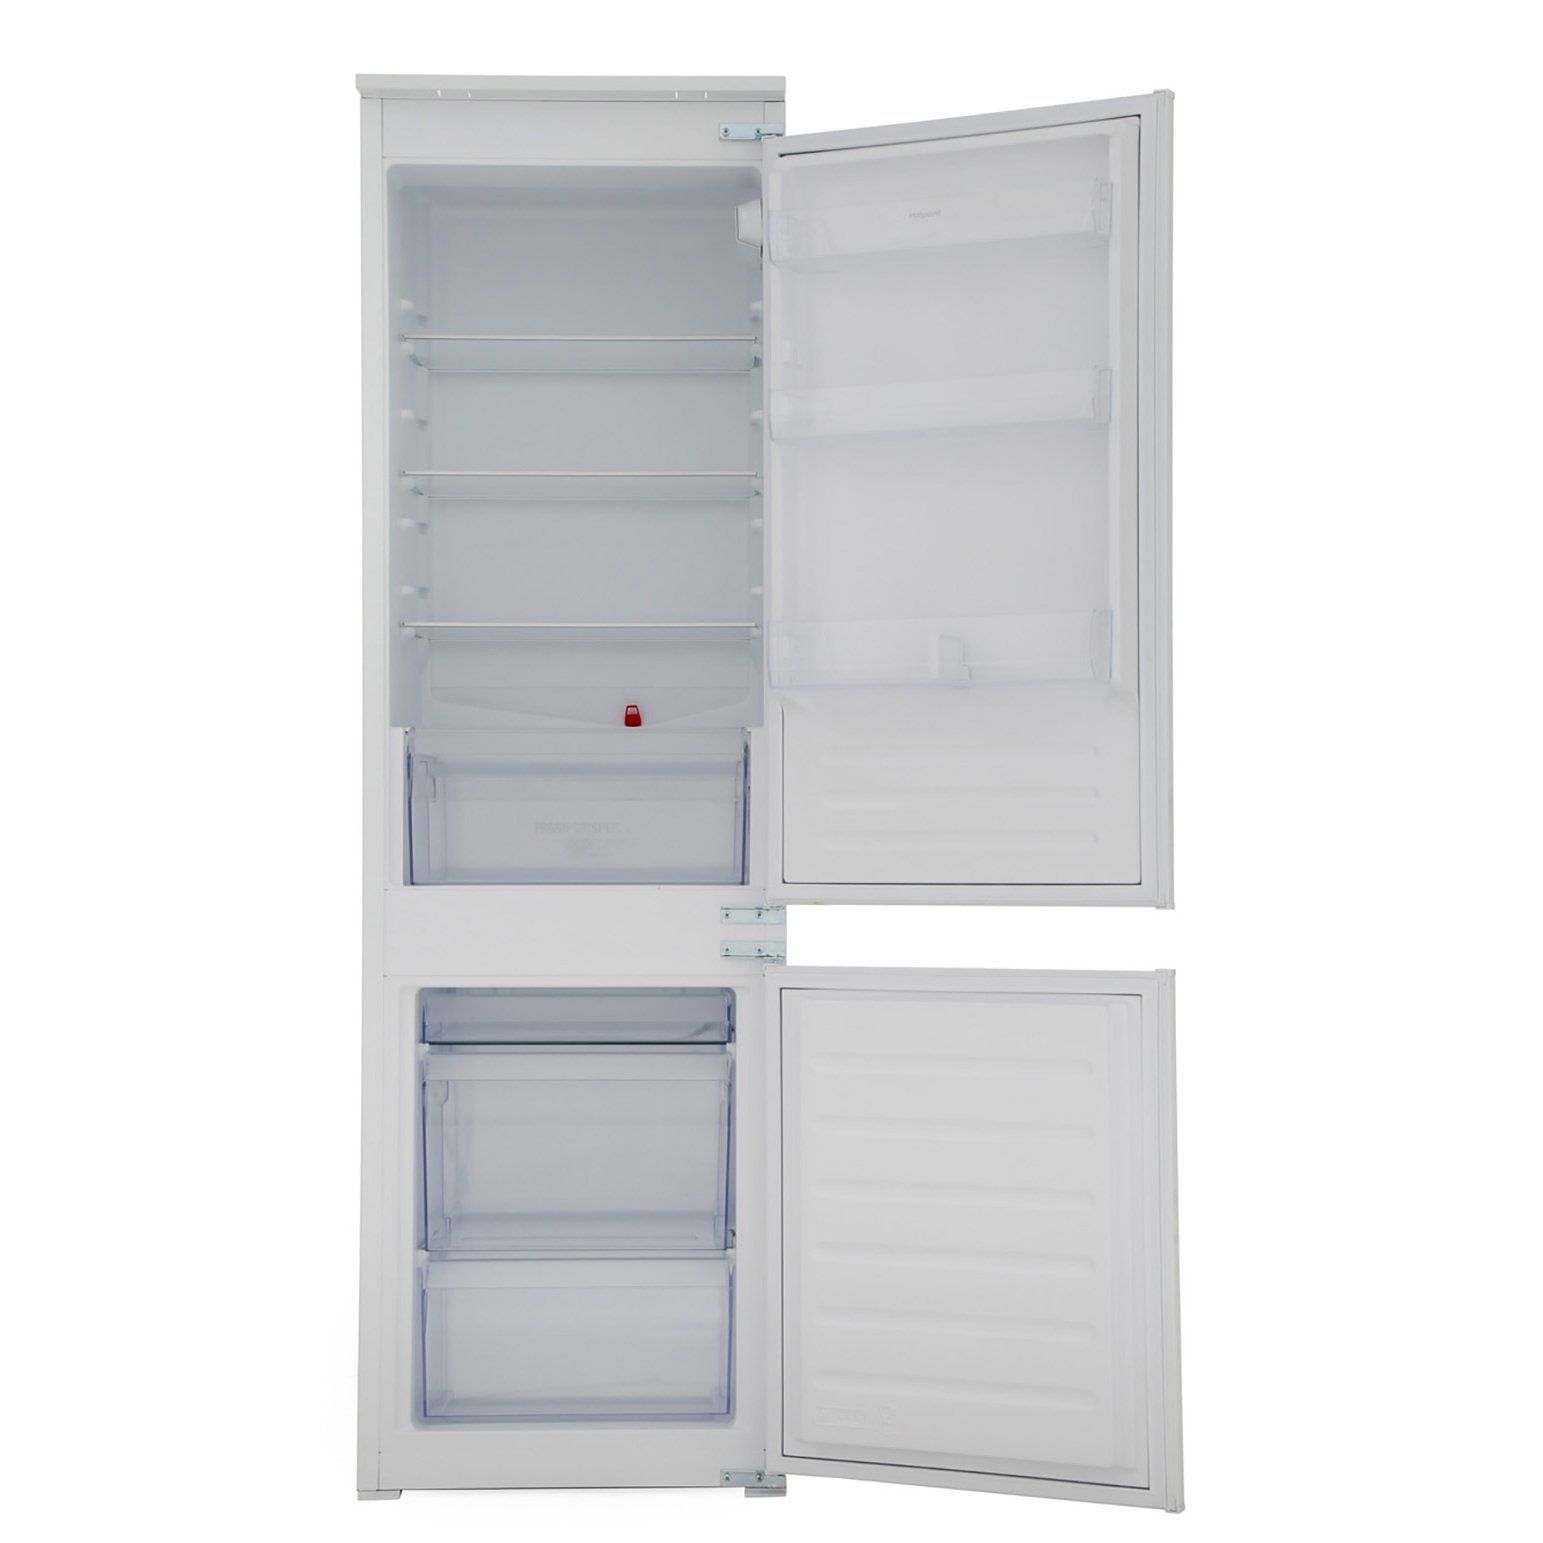 Buy Hotpoint HMCB7030AA Integrated Fridge Freezer - White | Marks Electrical